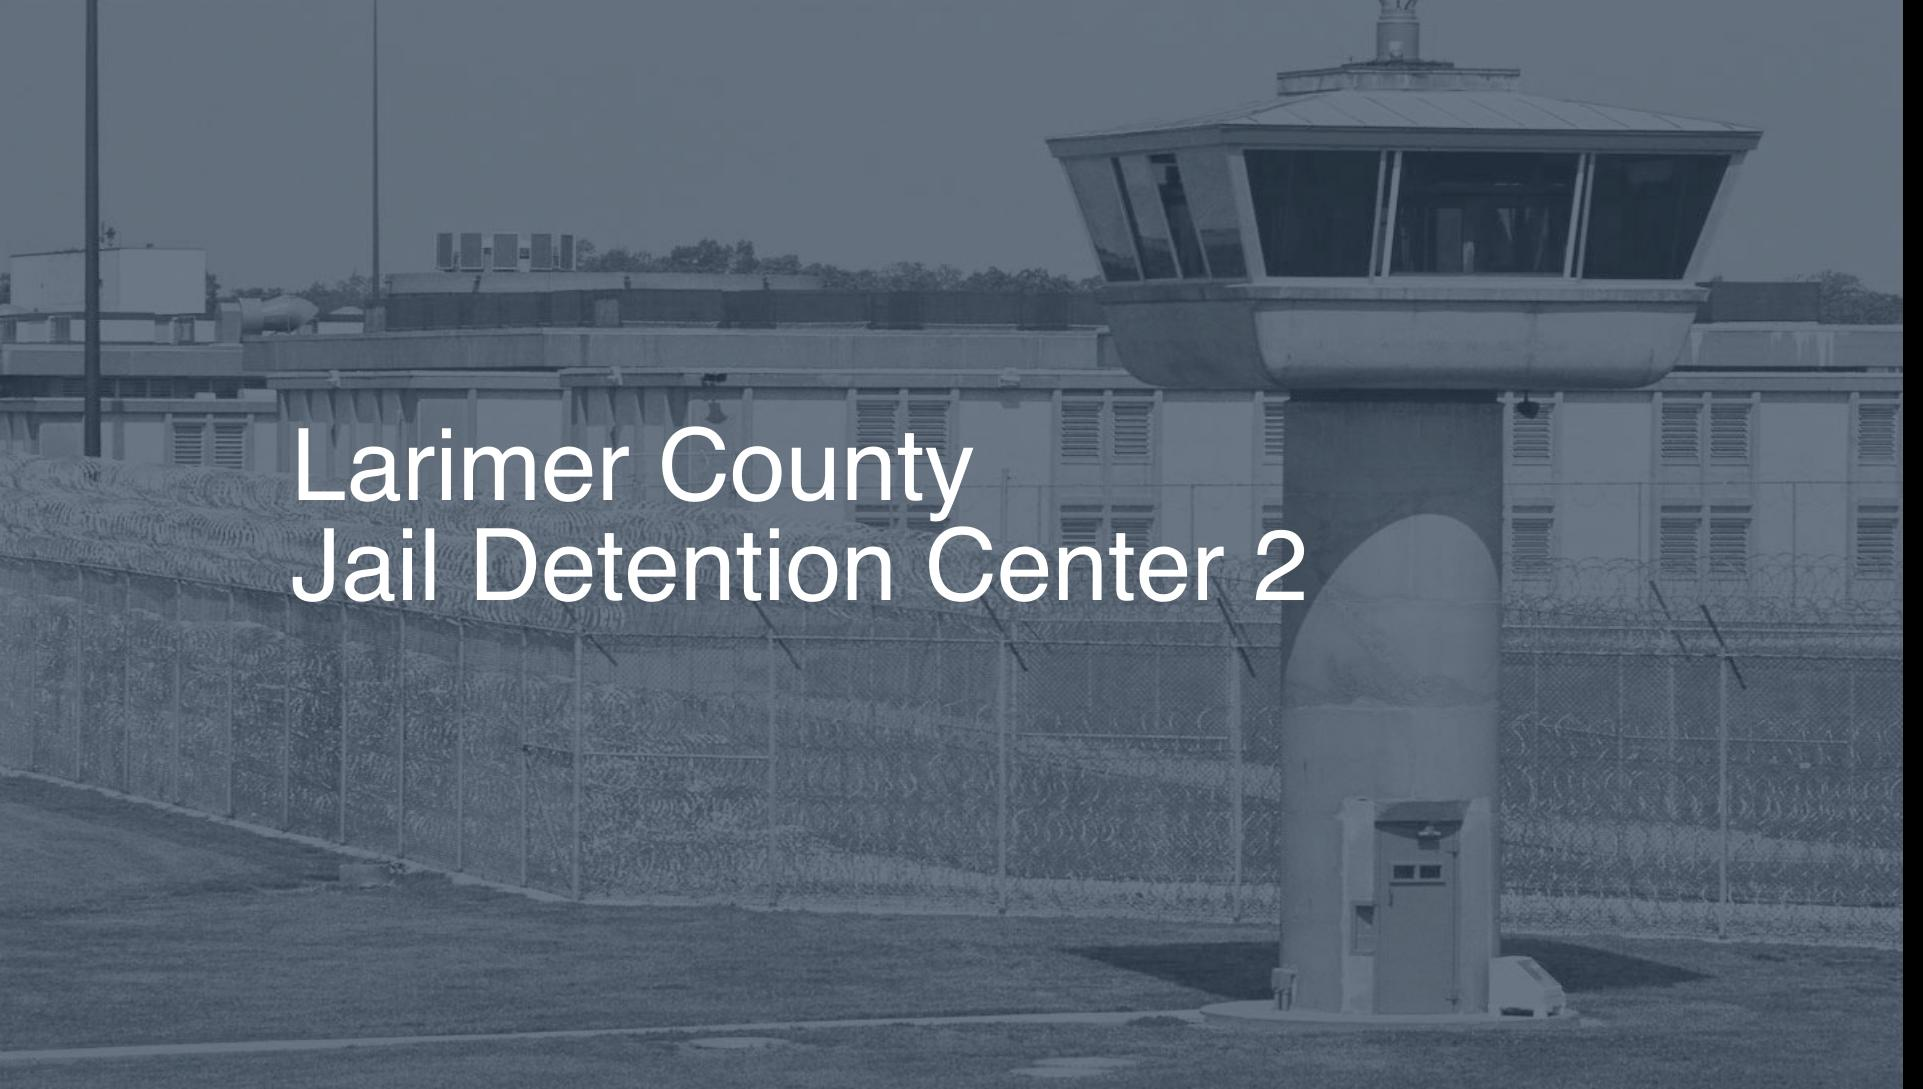 Larimer County Jail & Detention Center | Pigeonly - Inmate